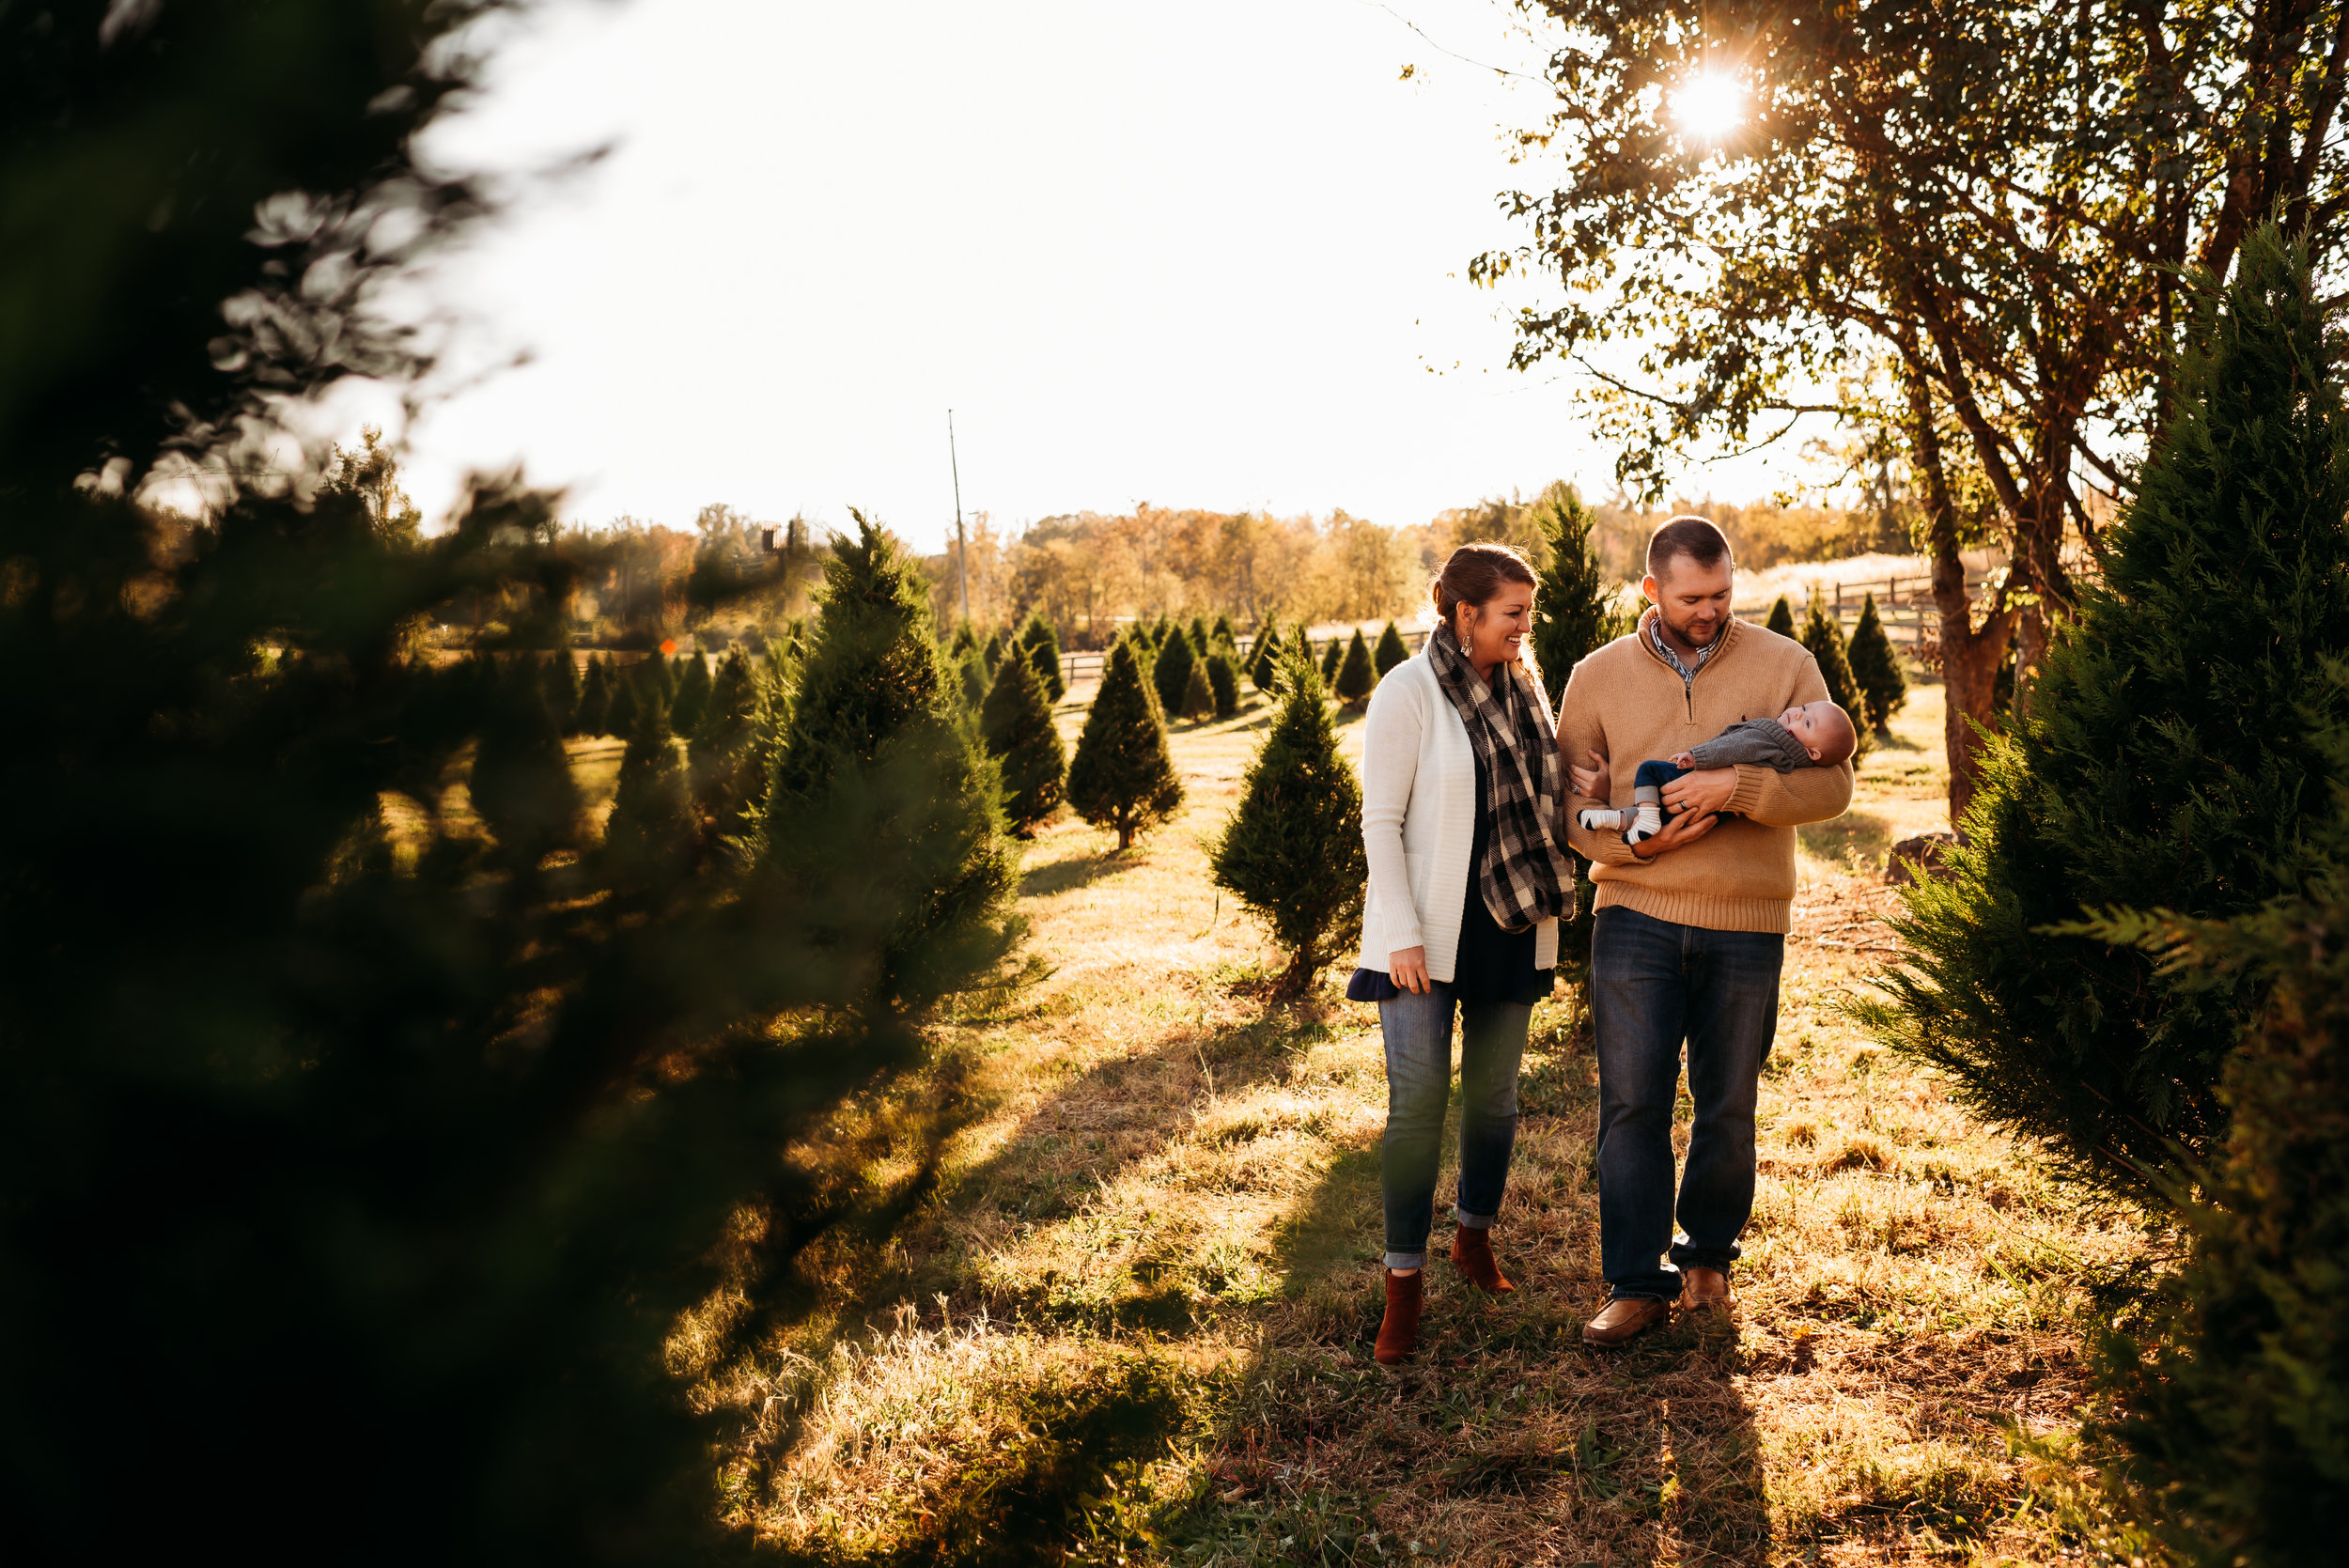 stutts-family-christmas-tree-farm-session-Huntsville-al-22.jpg